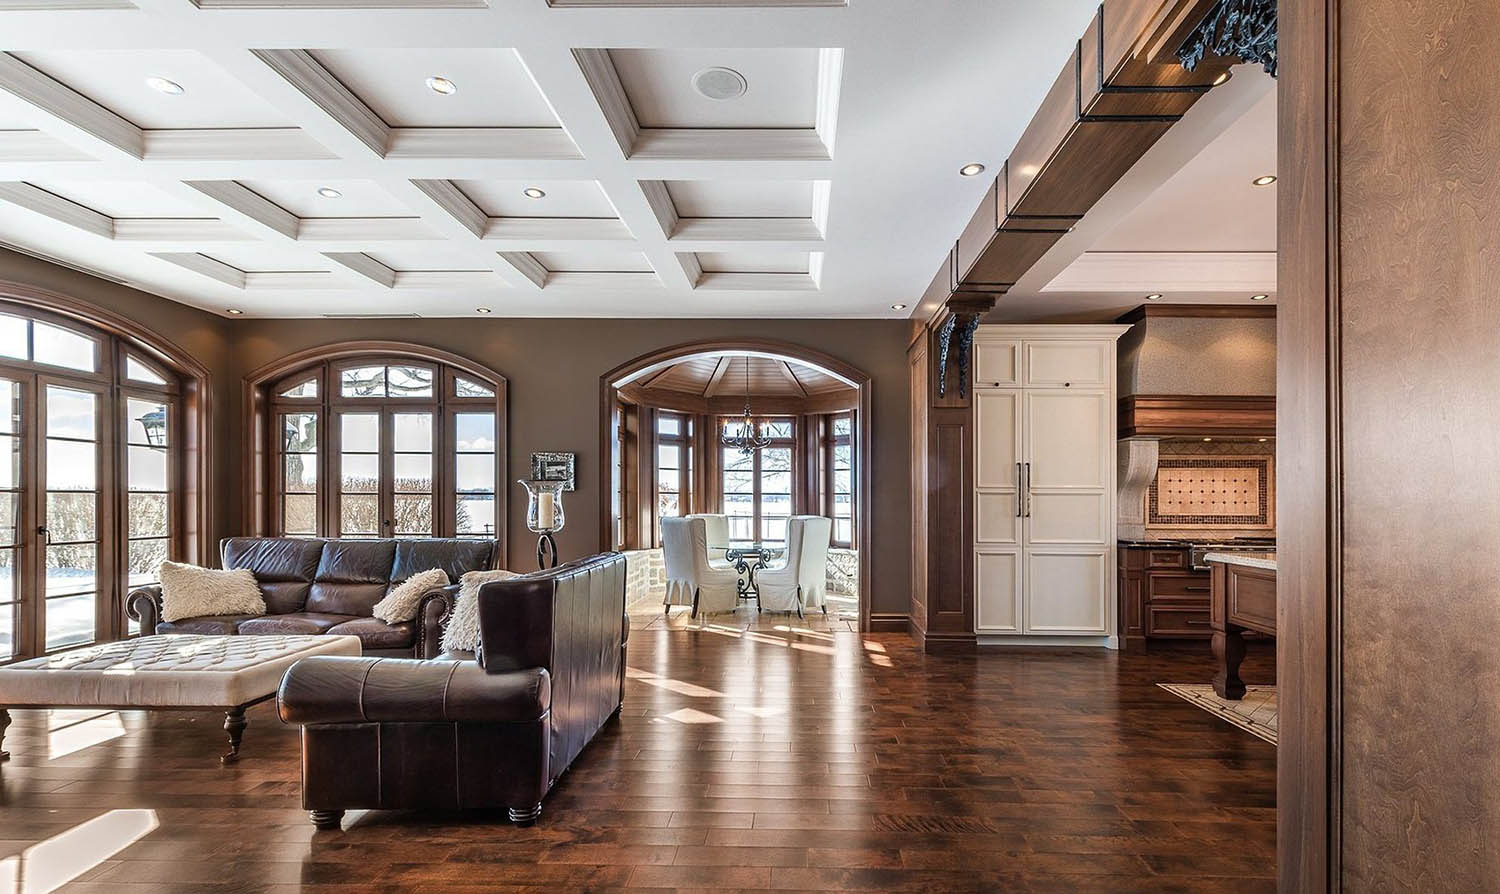 sheetrocked coffered ceiling with dropped soffit in the living room brown walls